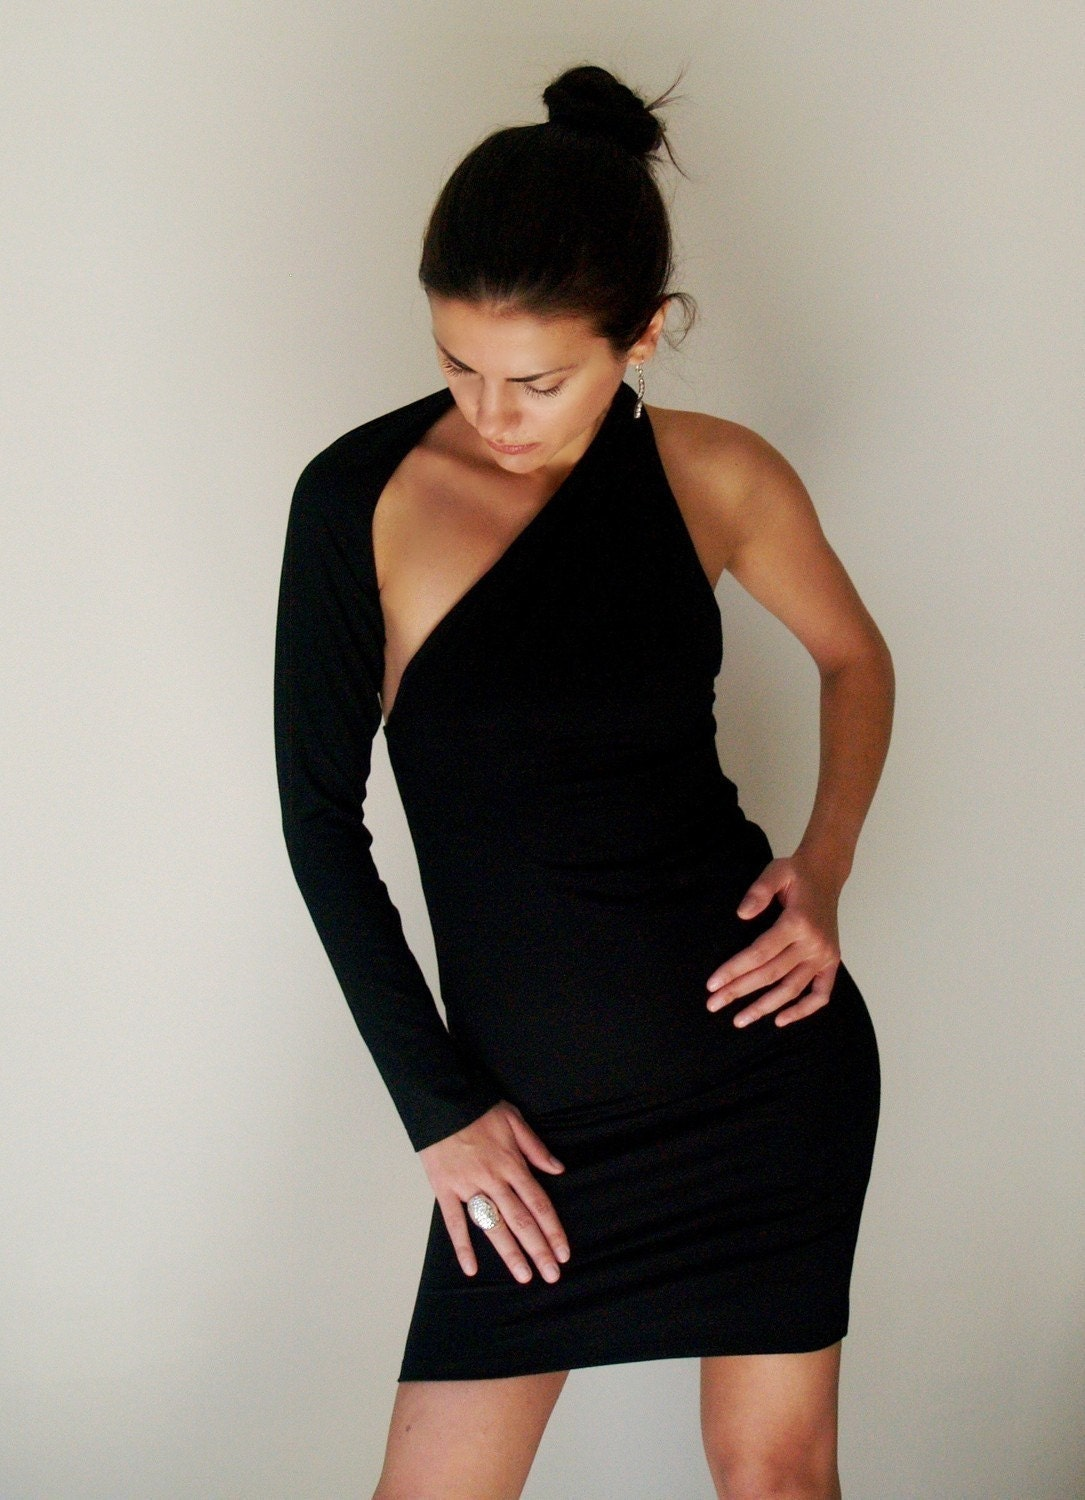 Black Party Dress Fitted One shoulder Mini Dress - Free US Shipping - Donation to UNICEF - Item MM-DRT1100B4